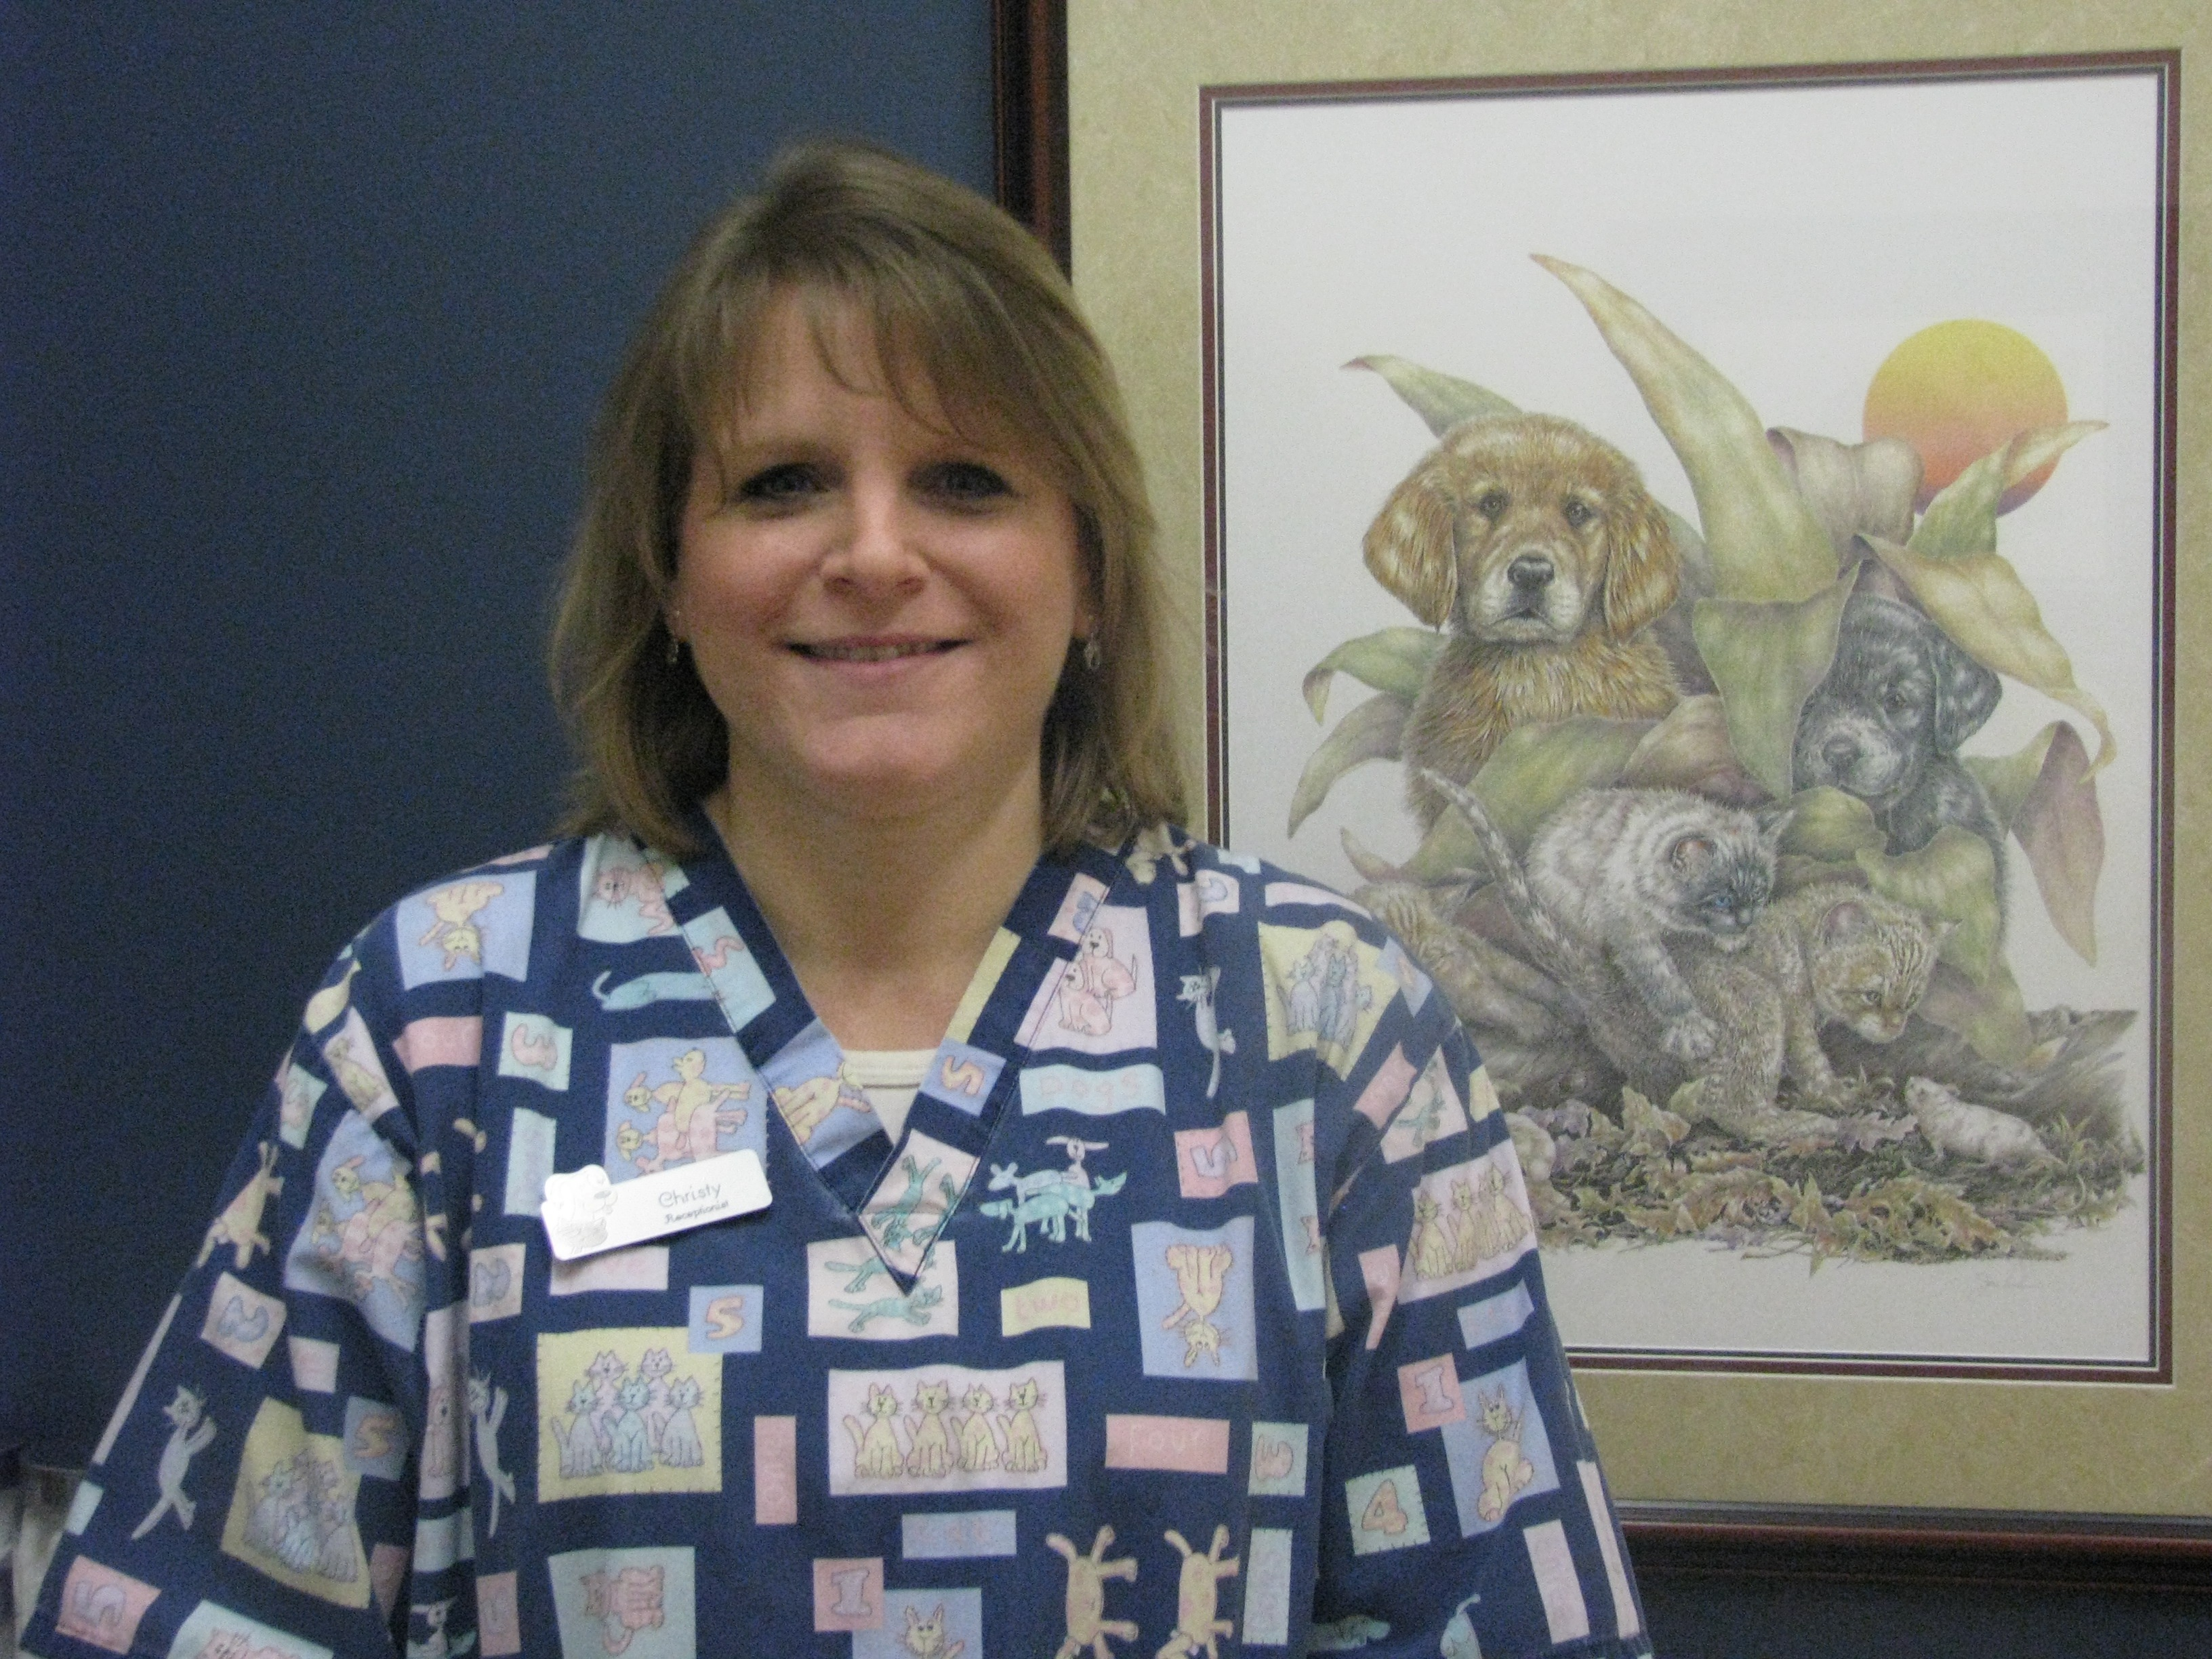 Christy Aldershoff - Receptionist Supervisor